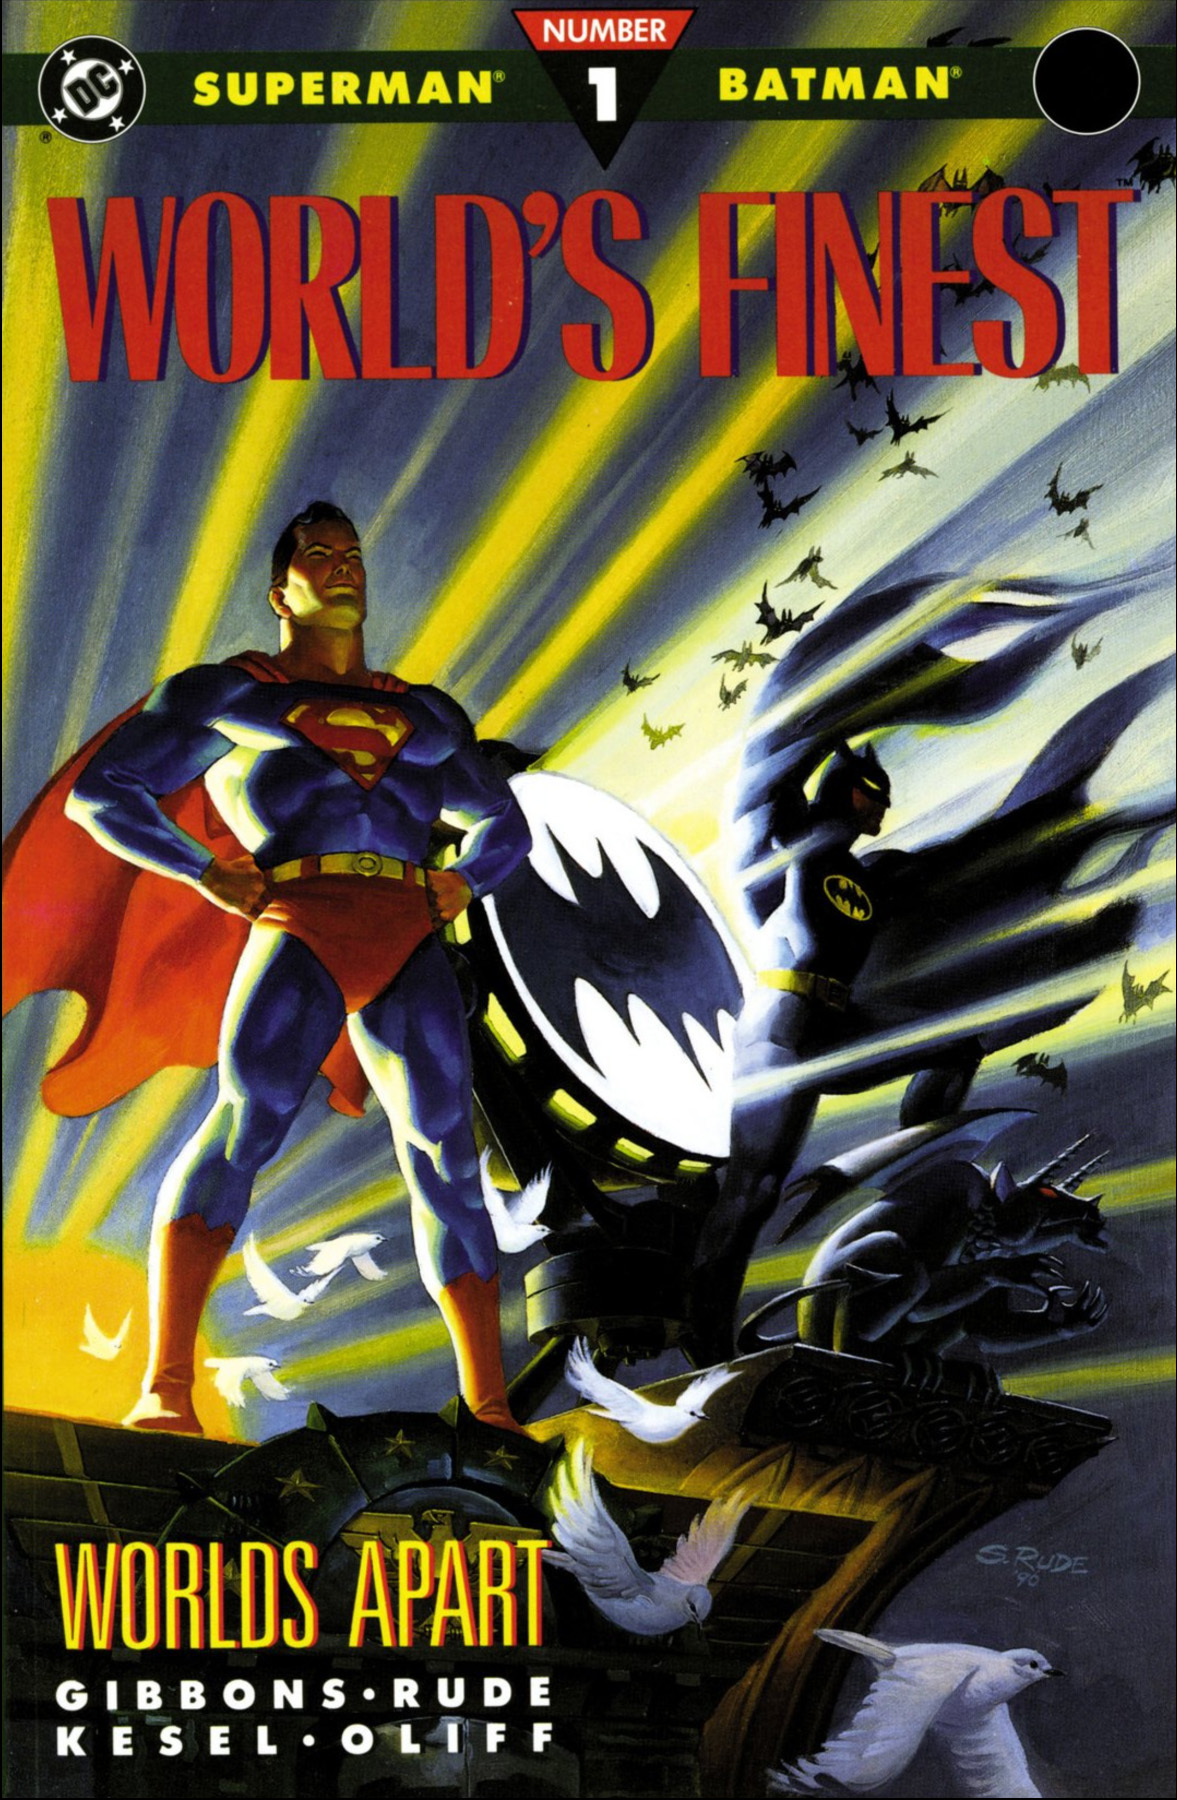 CW-Worlds-Finest-3-parter-cover-1